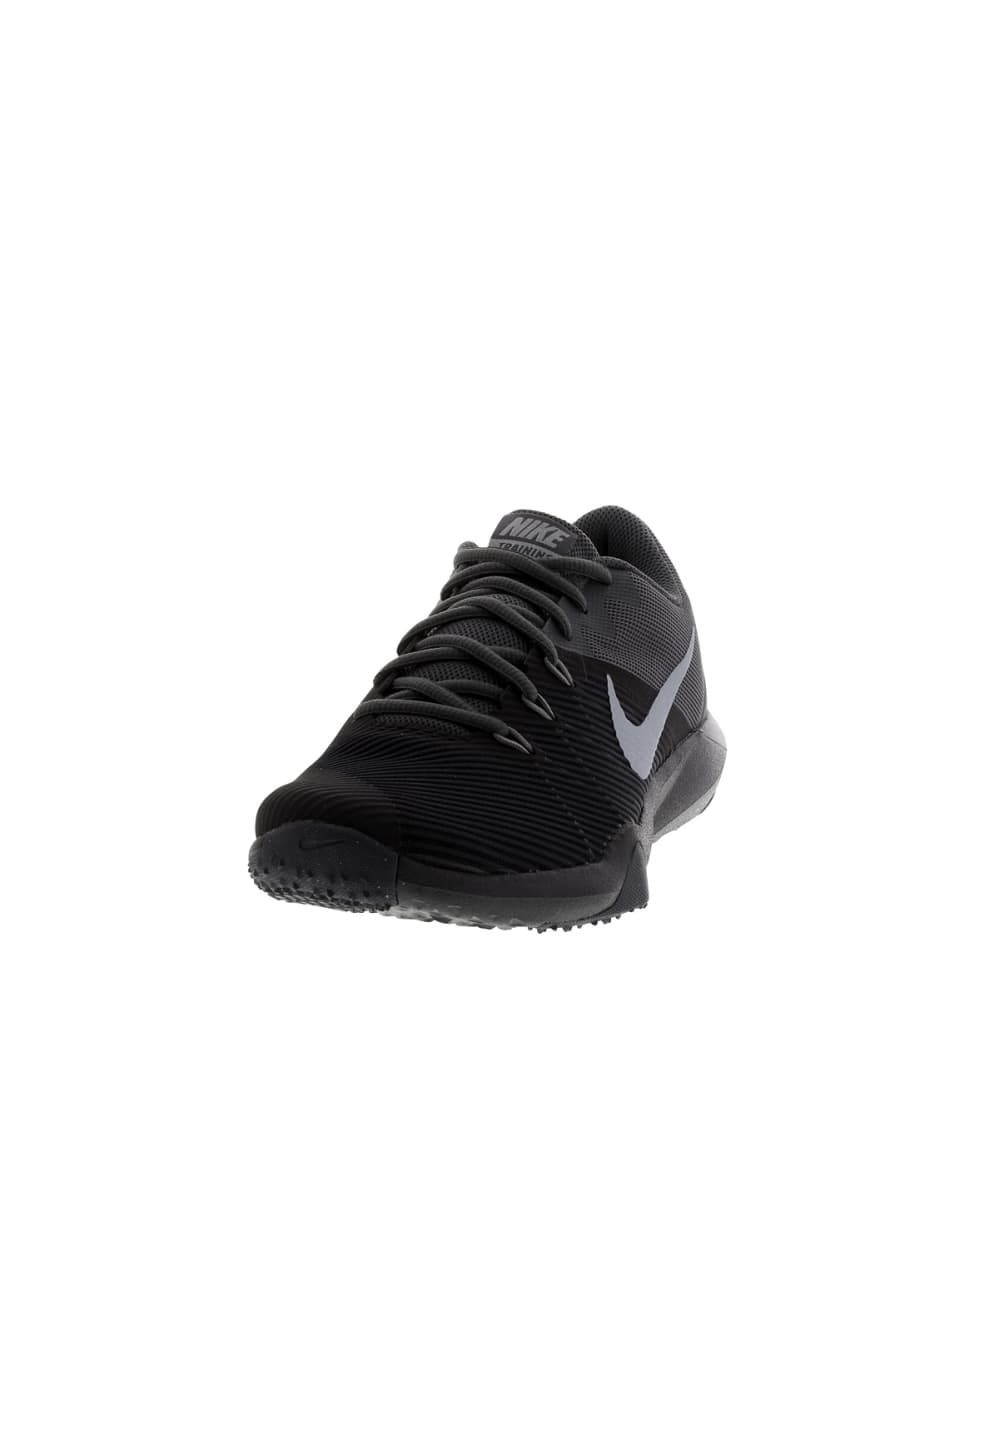 940308208a5a Nike Retaliation TR - Fitness shoes for Men - Brown